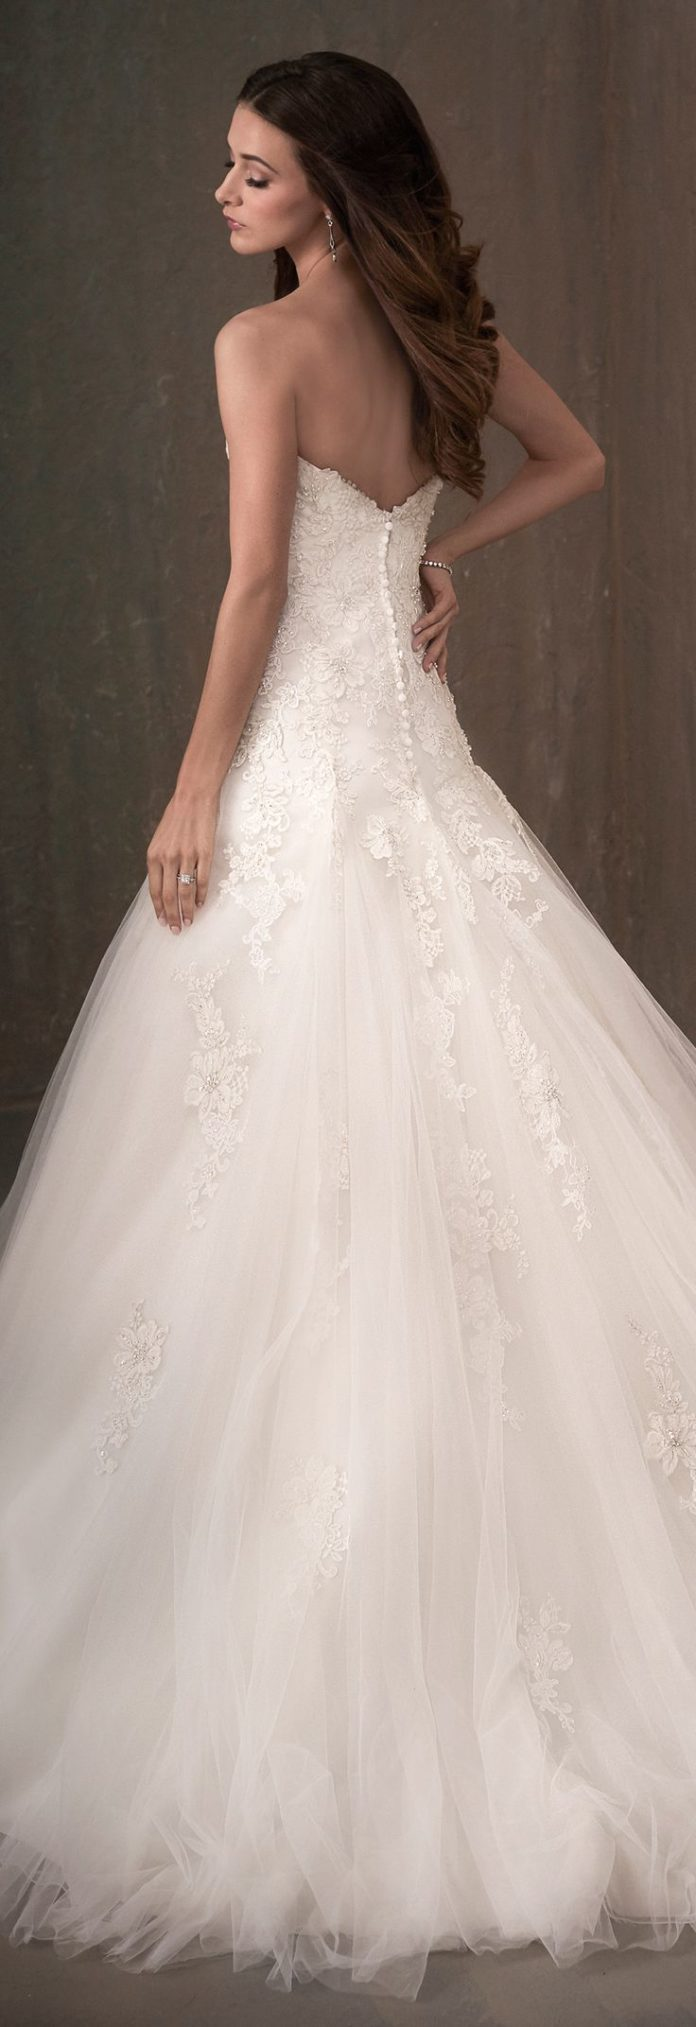 wedding dresses a line princess wedding dress by